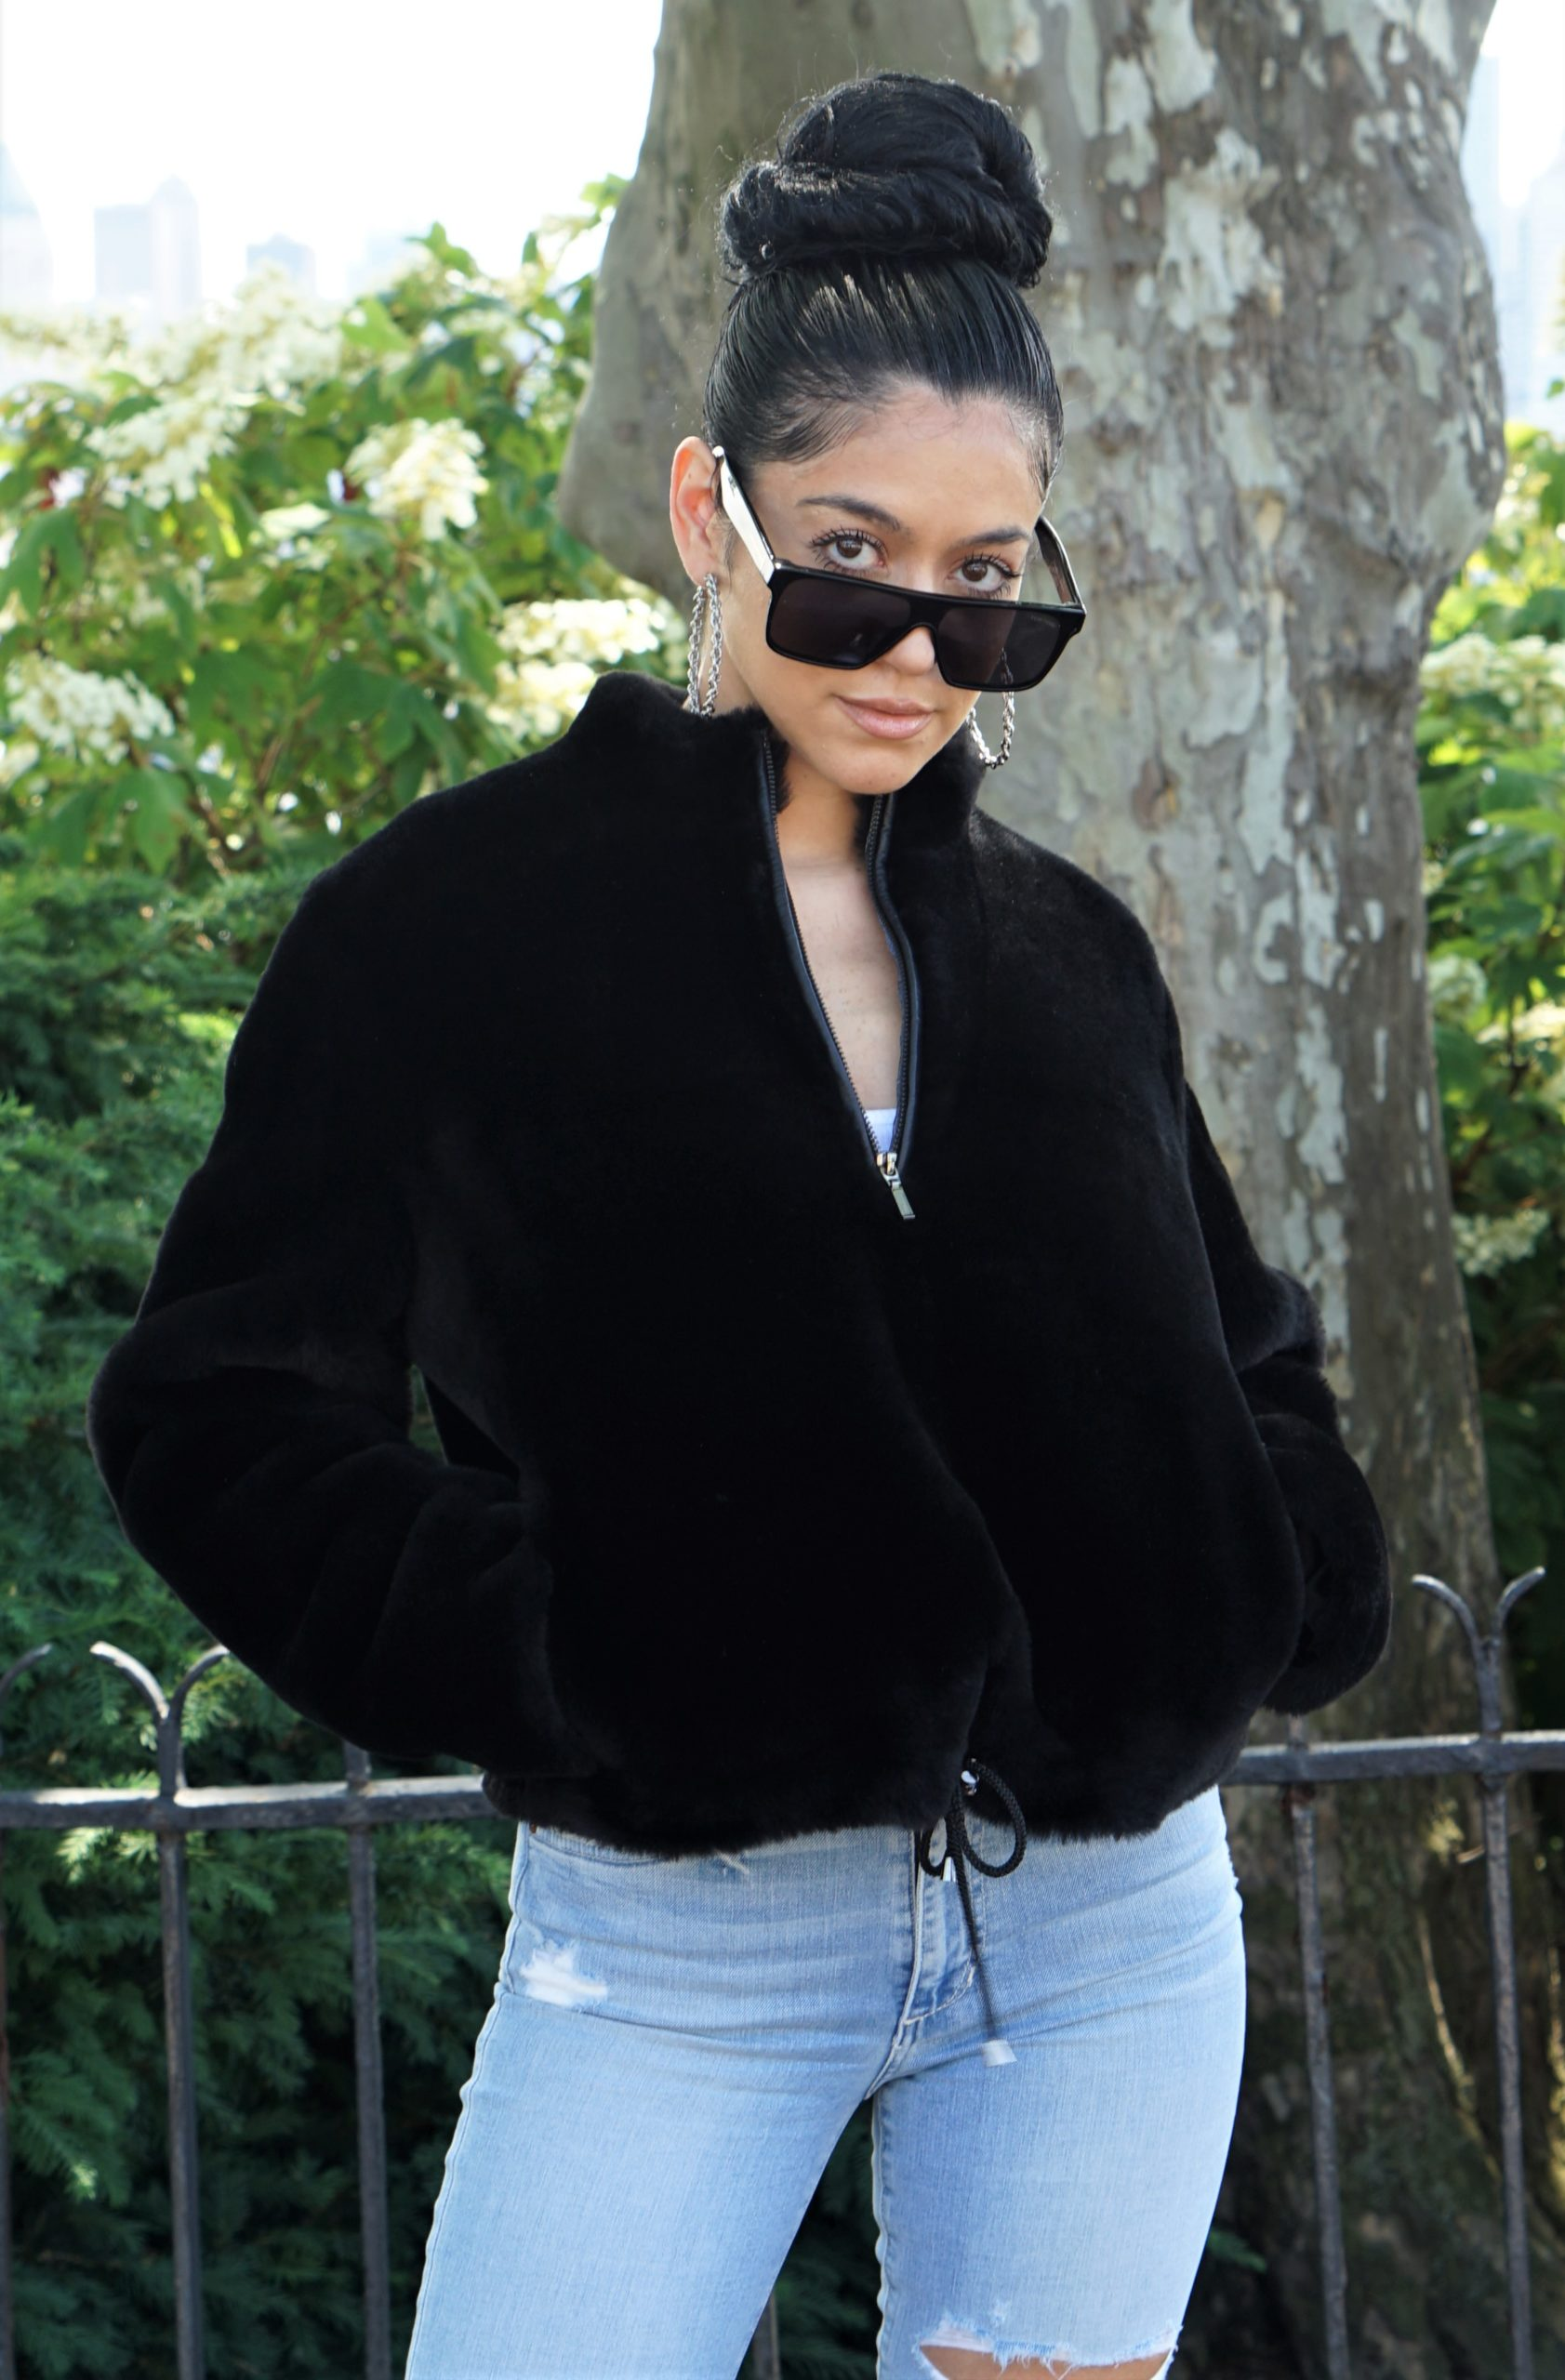 Woman's Designer Shearling Jacket